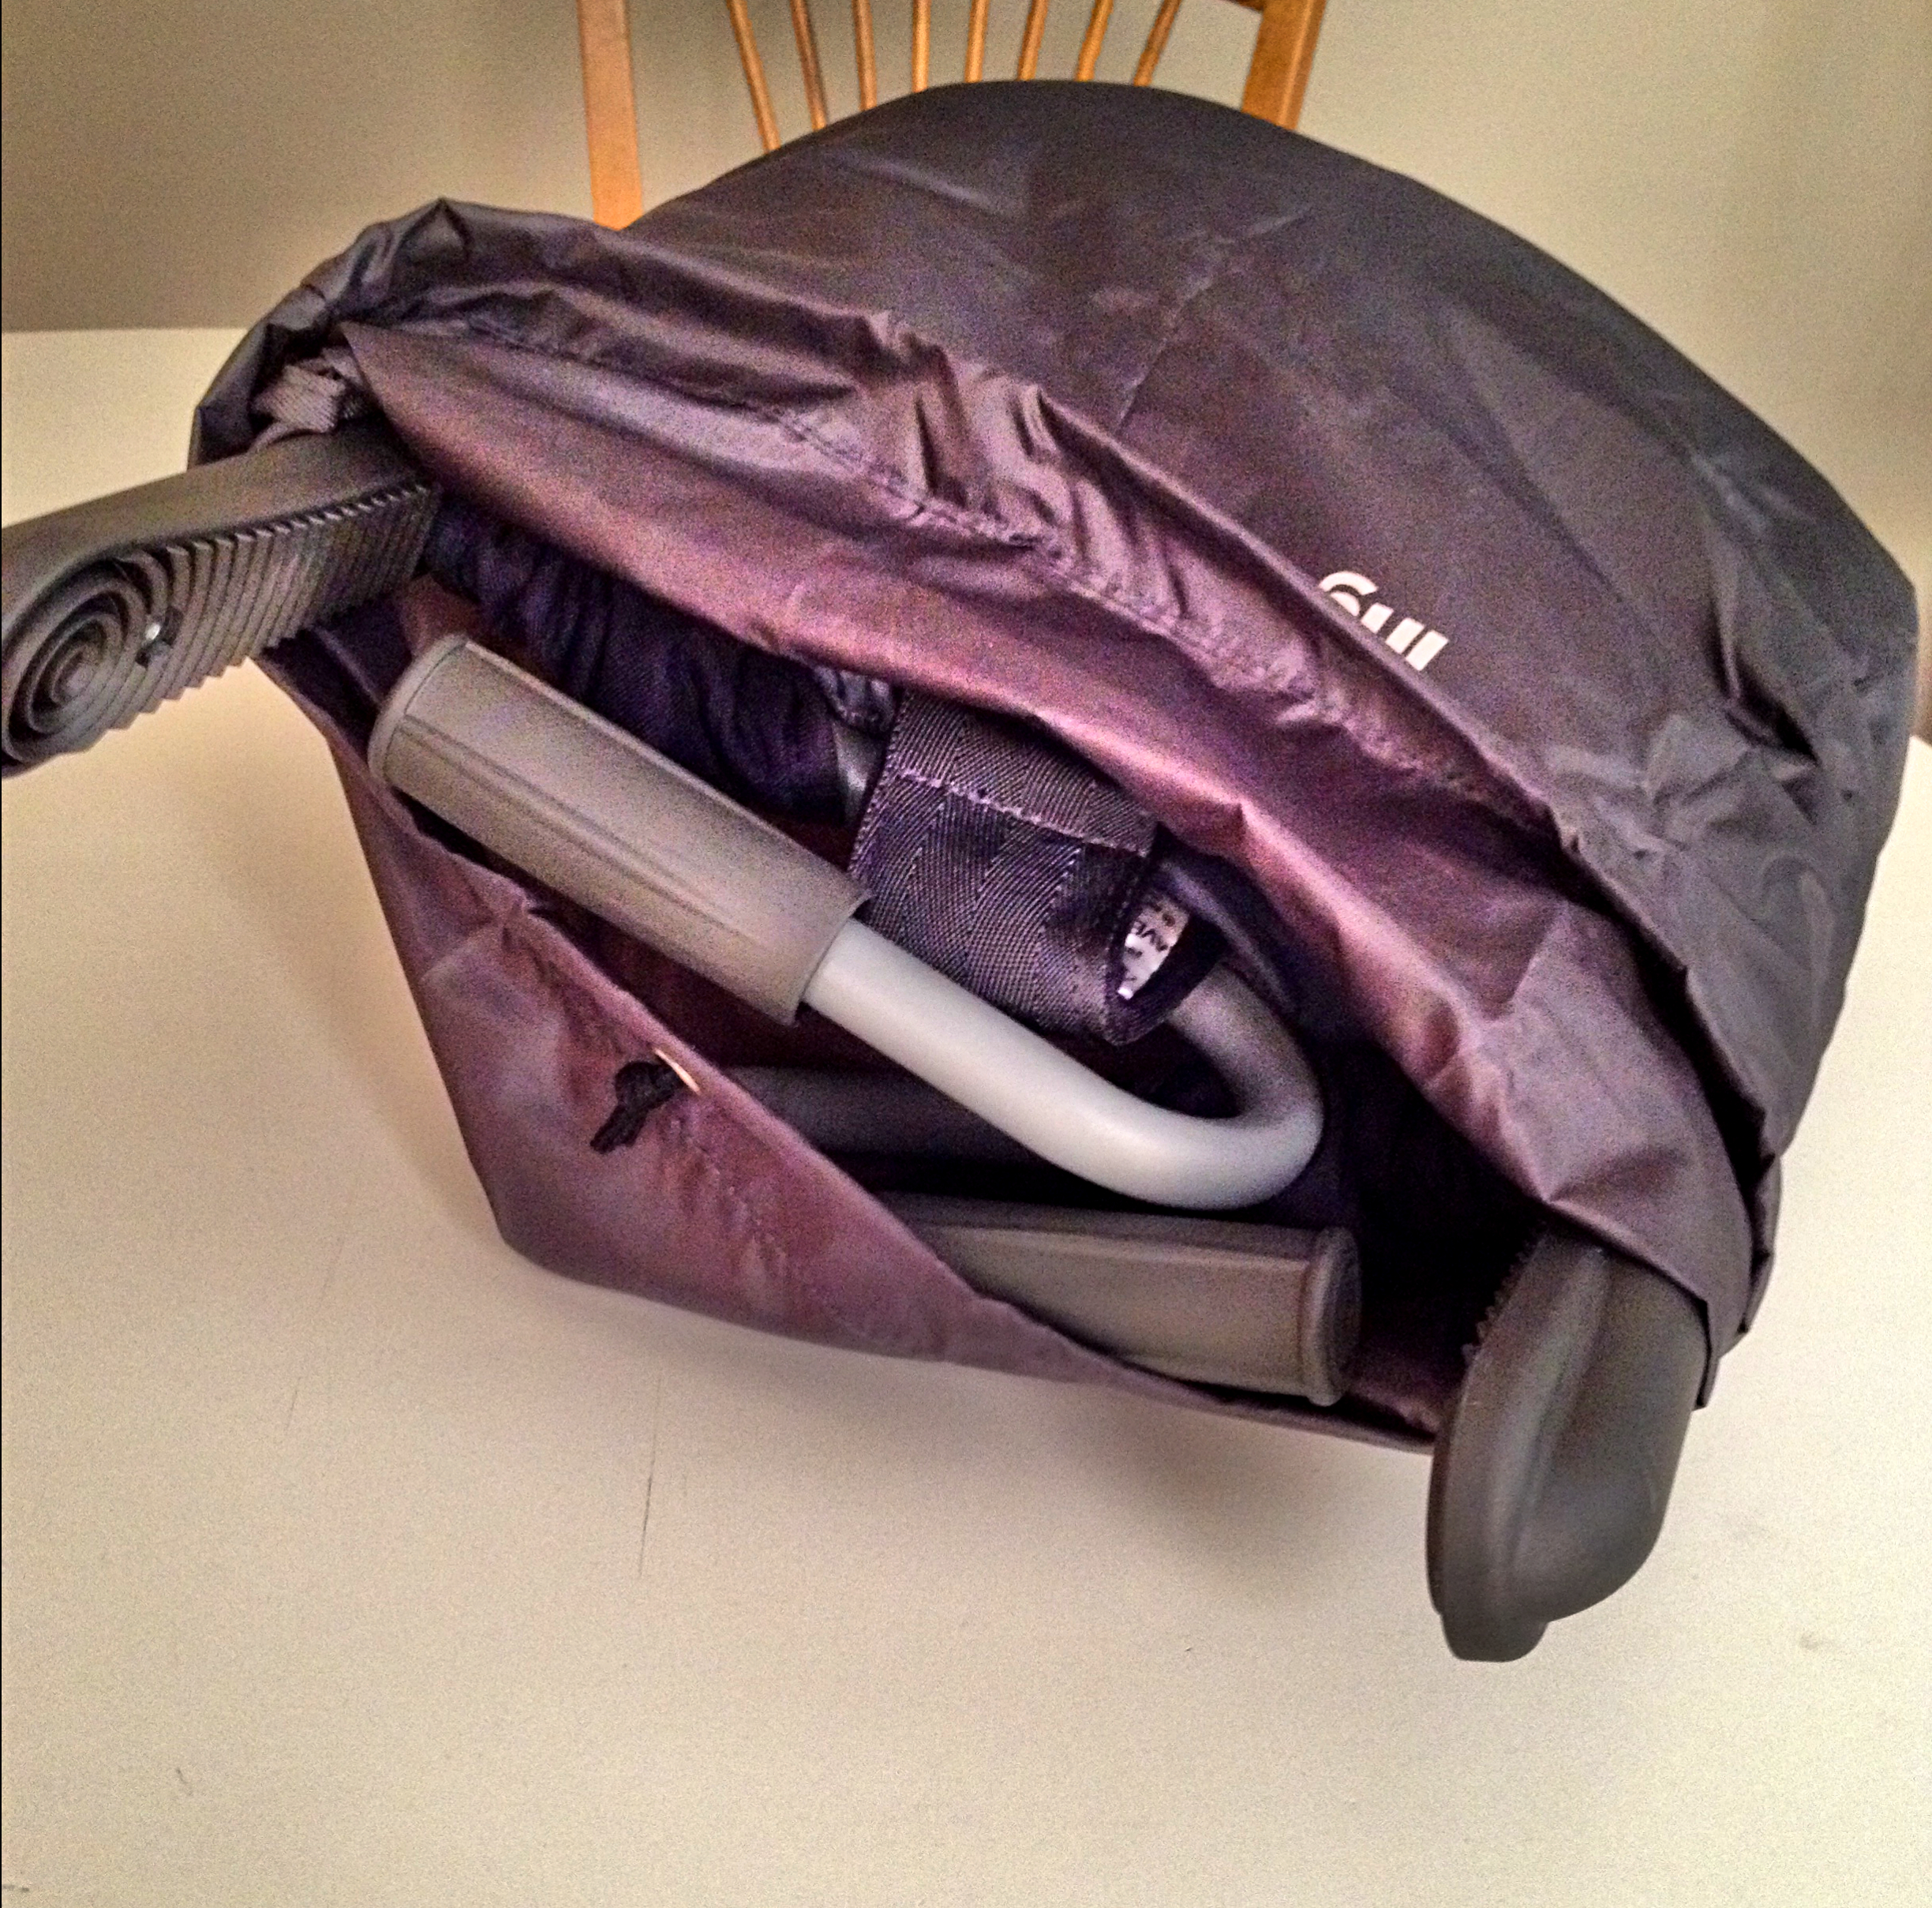 built in bag for easy travel and storage